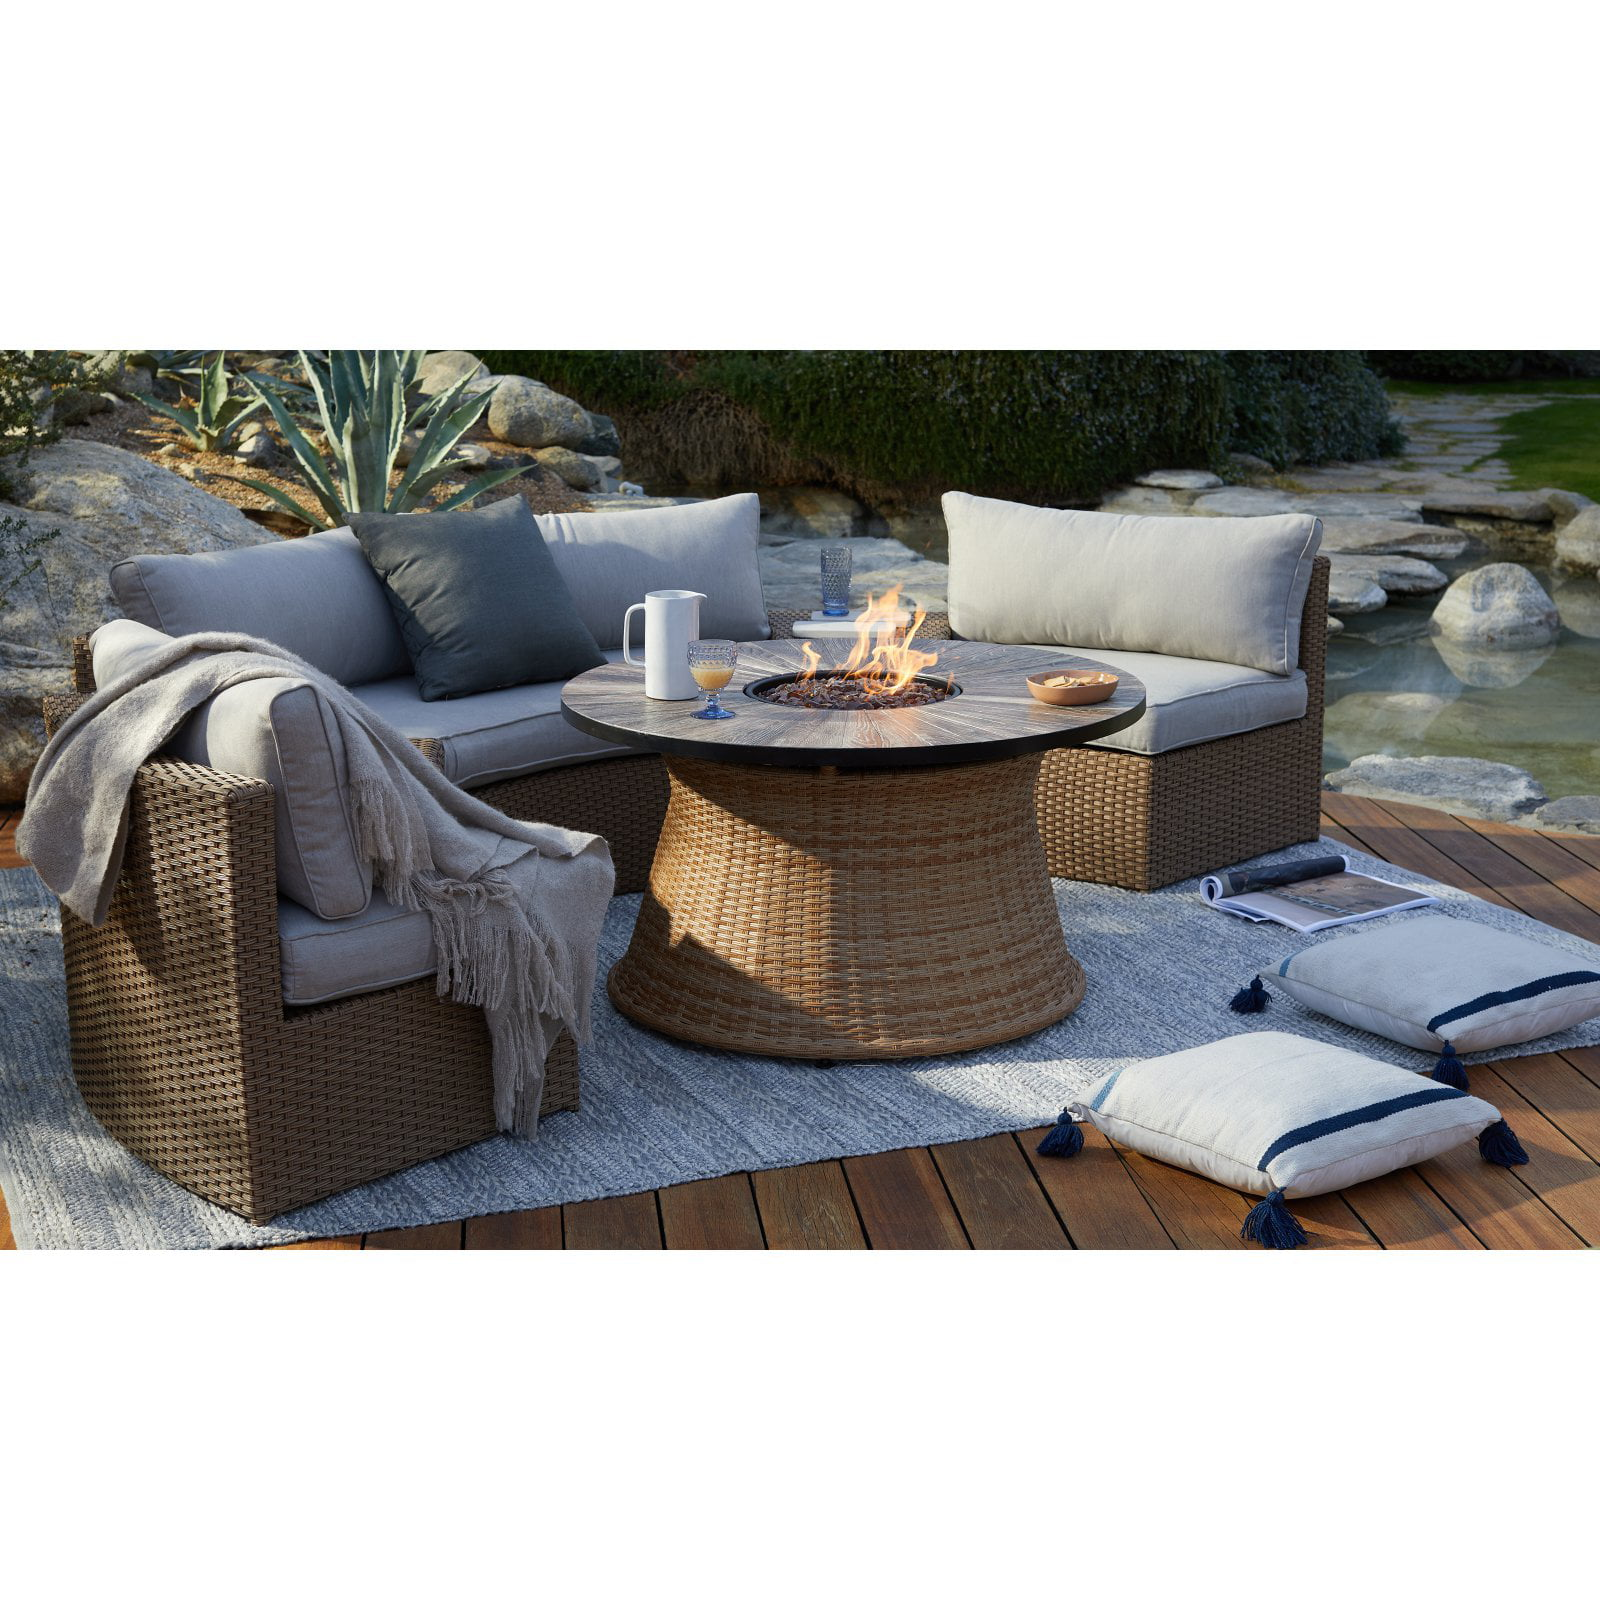 coral coast myles wicker curved outdoor patio fire pit sectional set walmart com